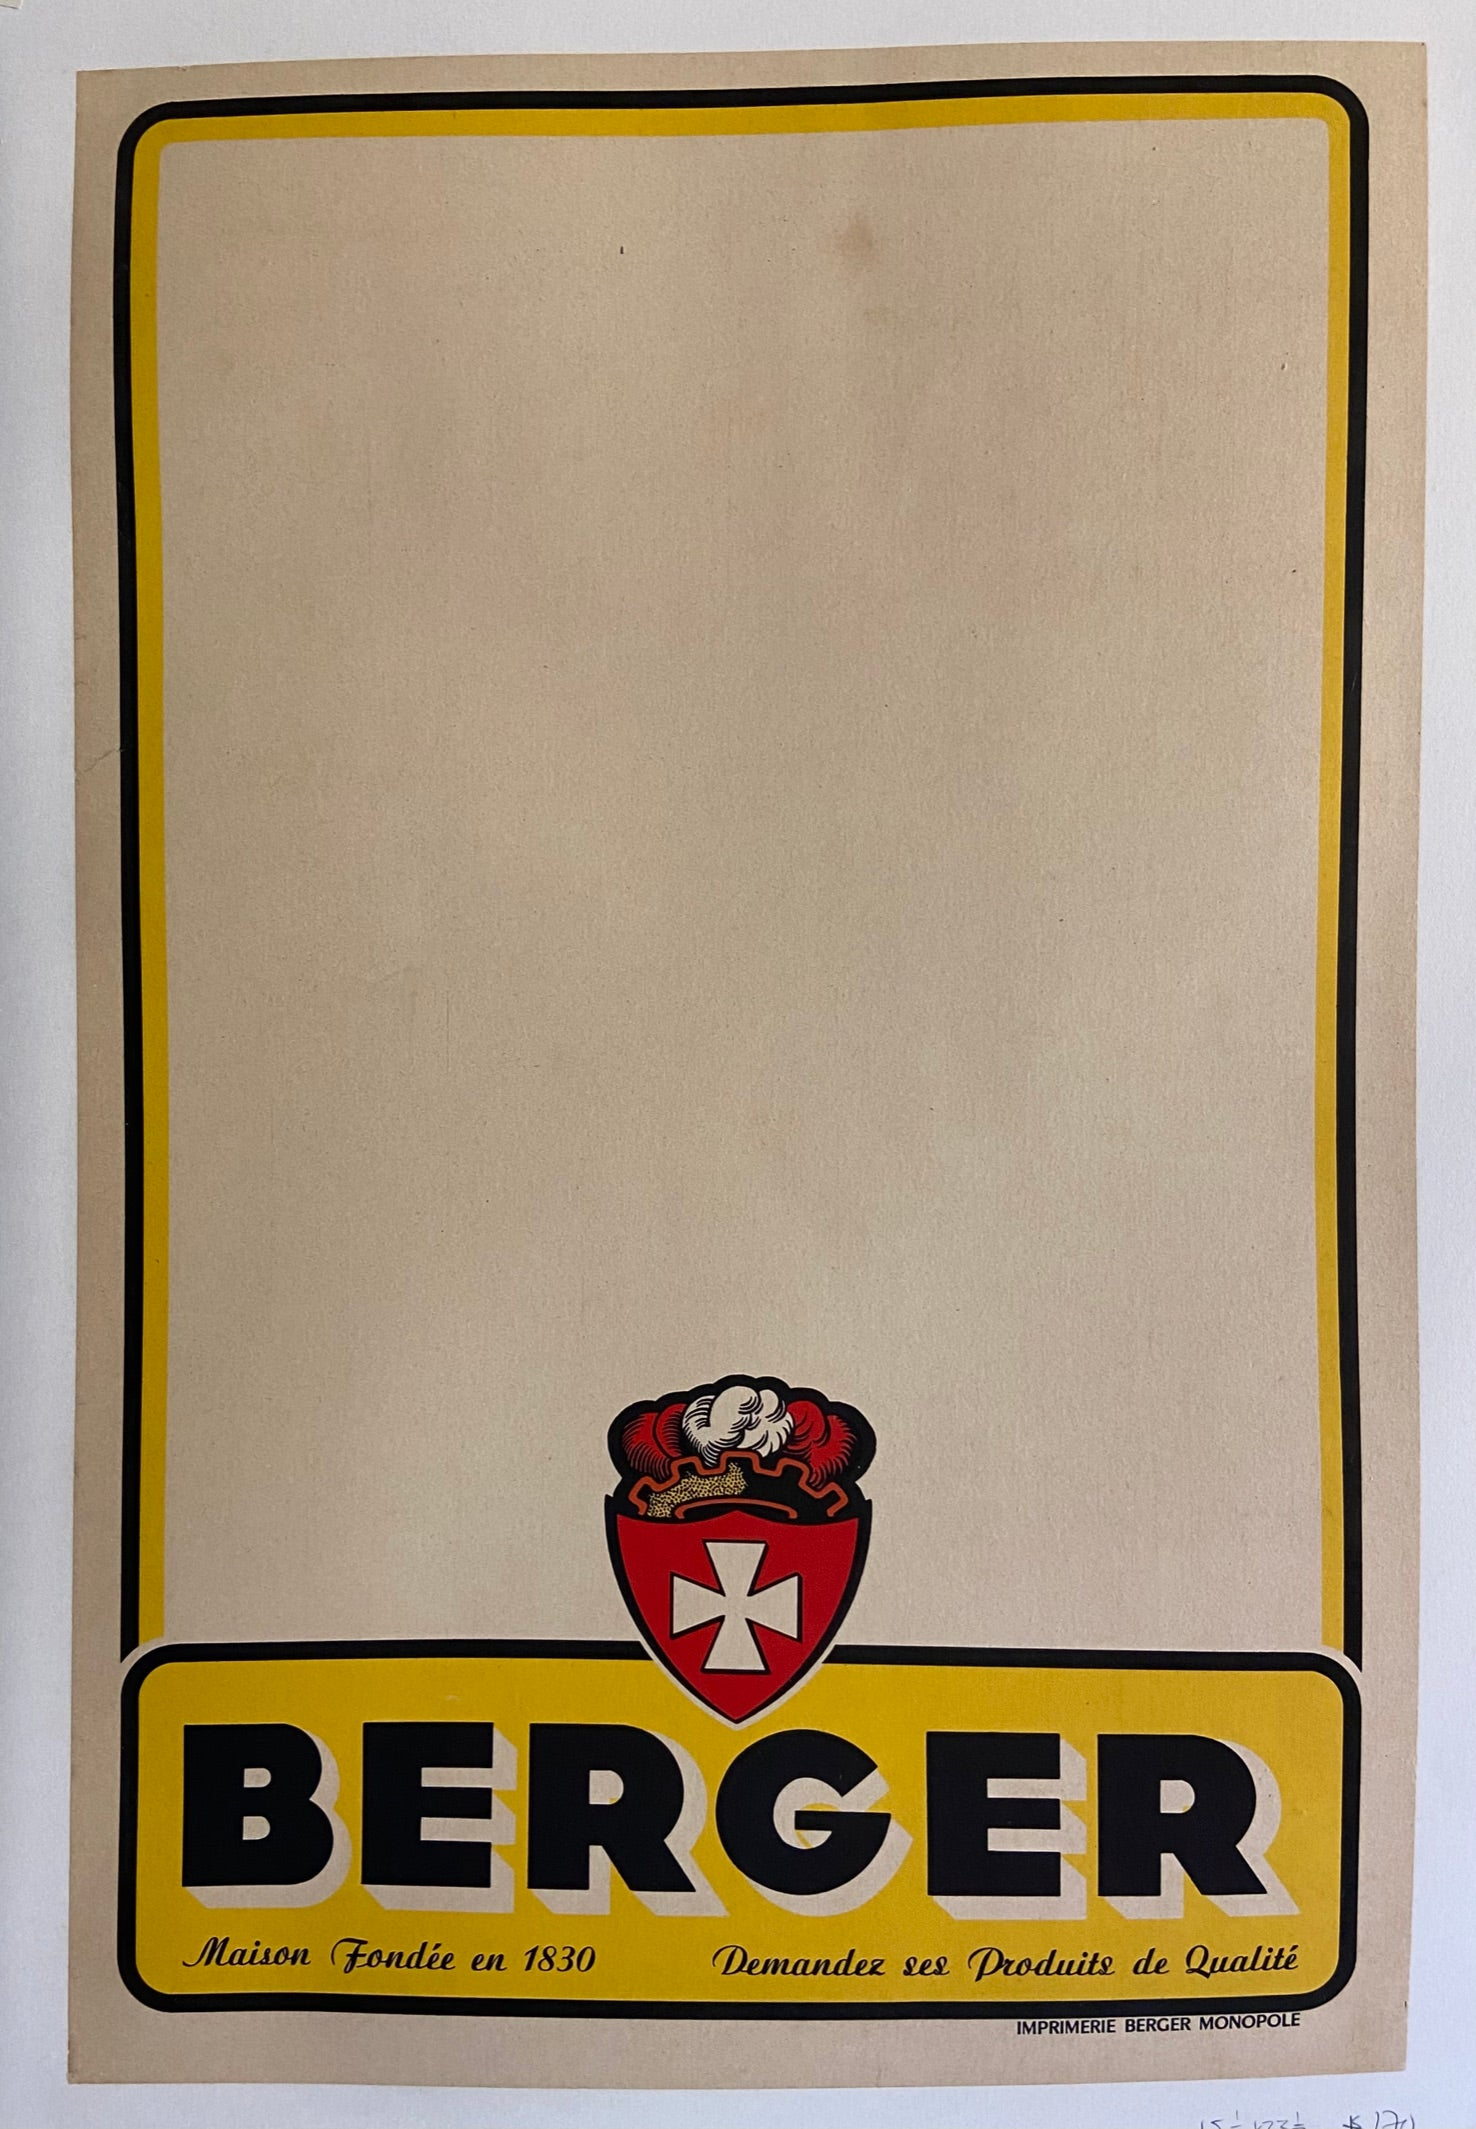 Poster for Berger aperitif, featuring the company logo and a minimalist, beige design